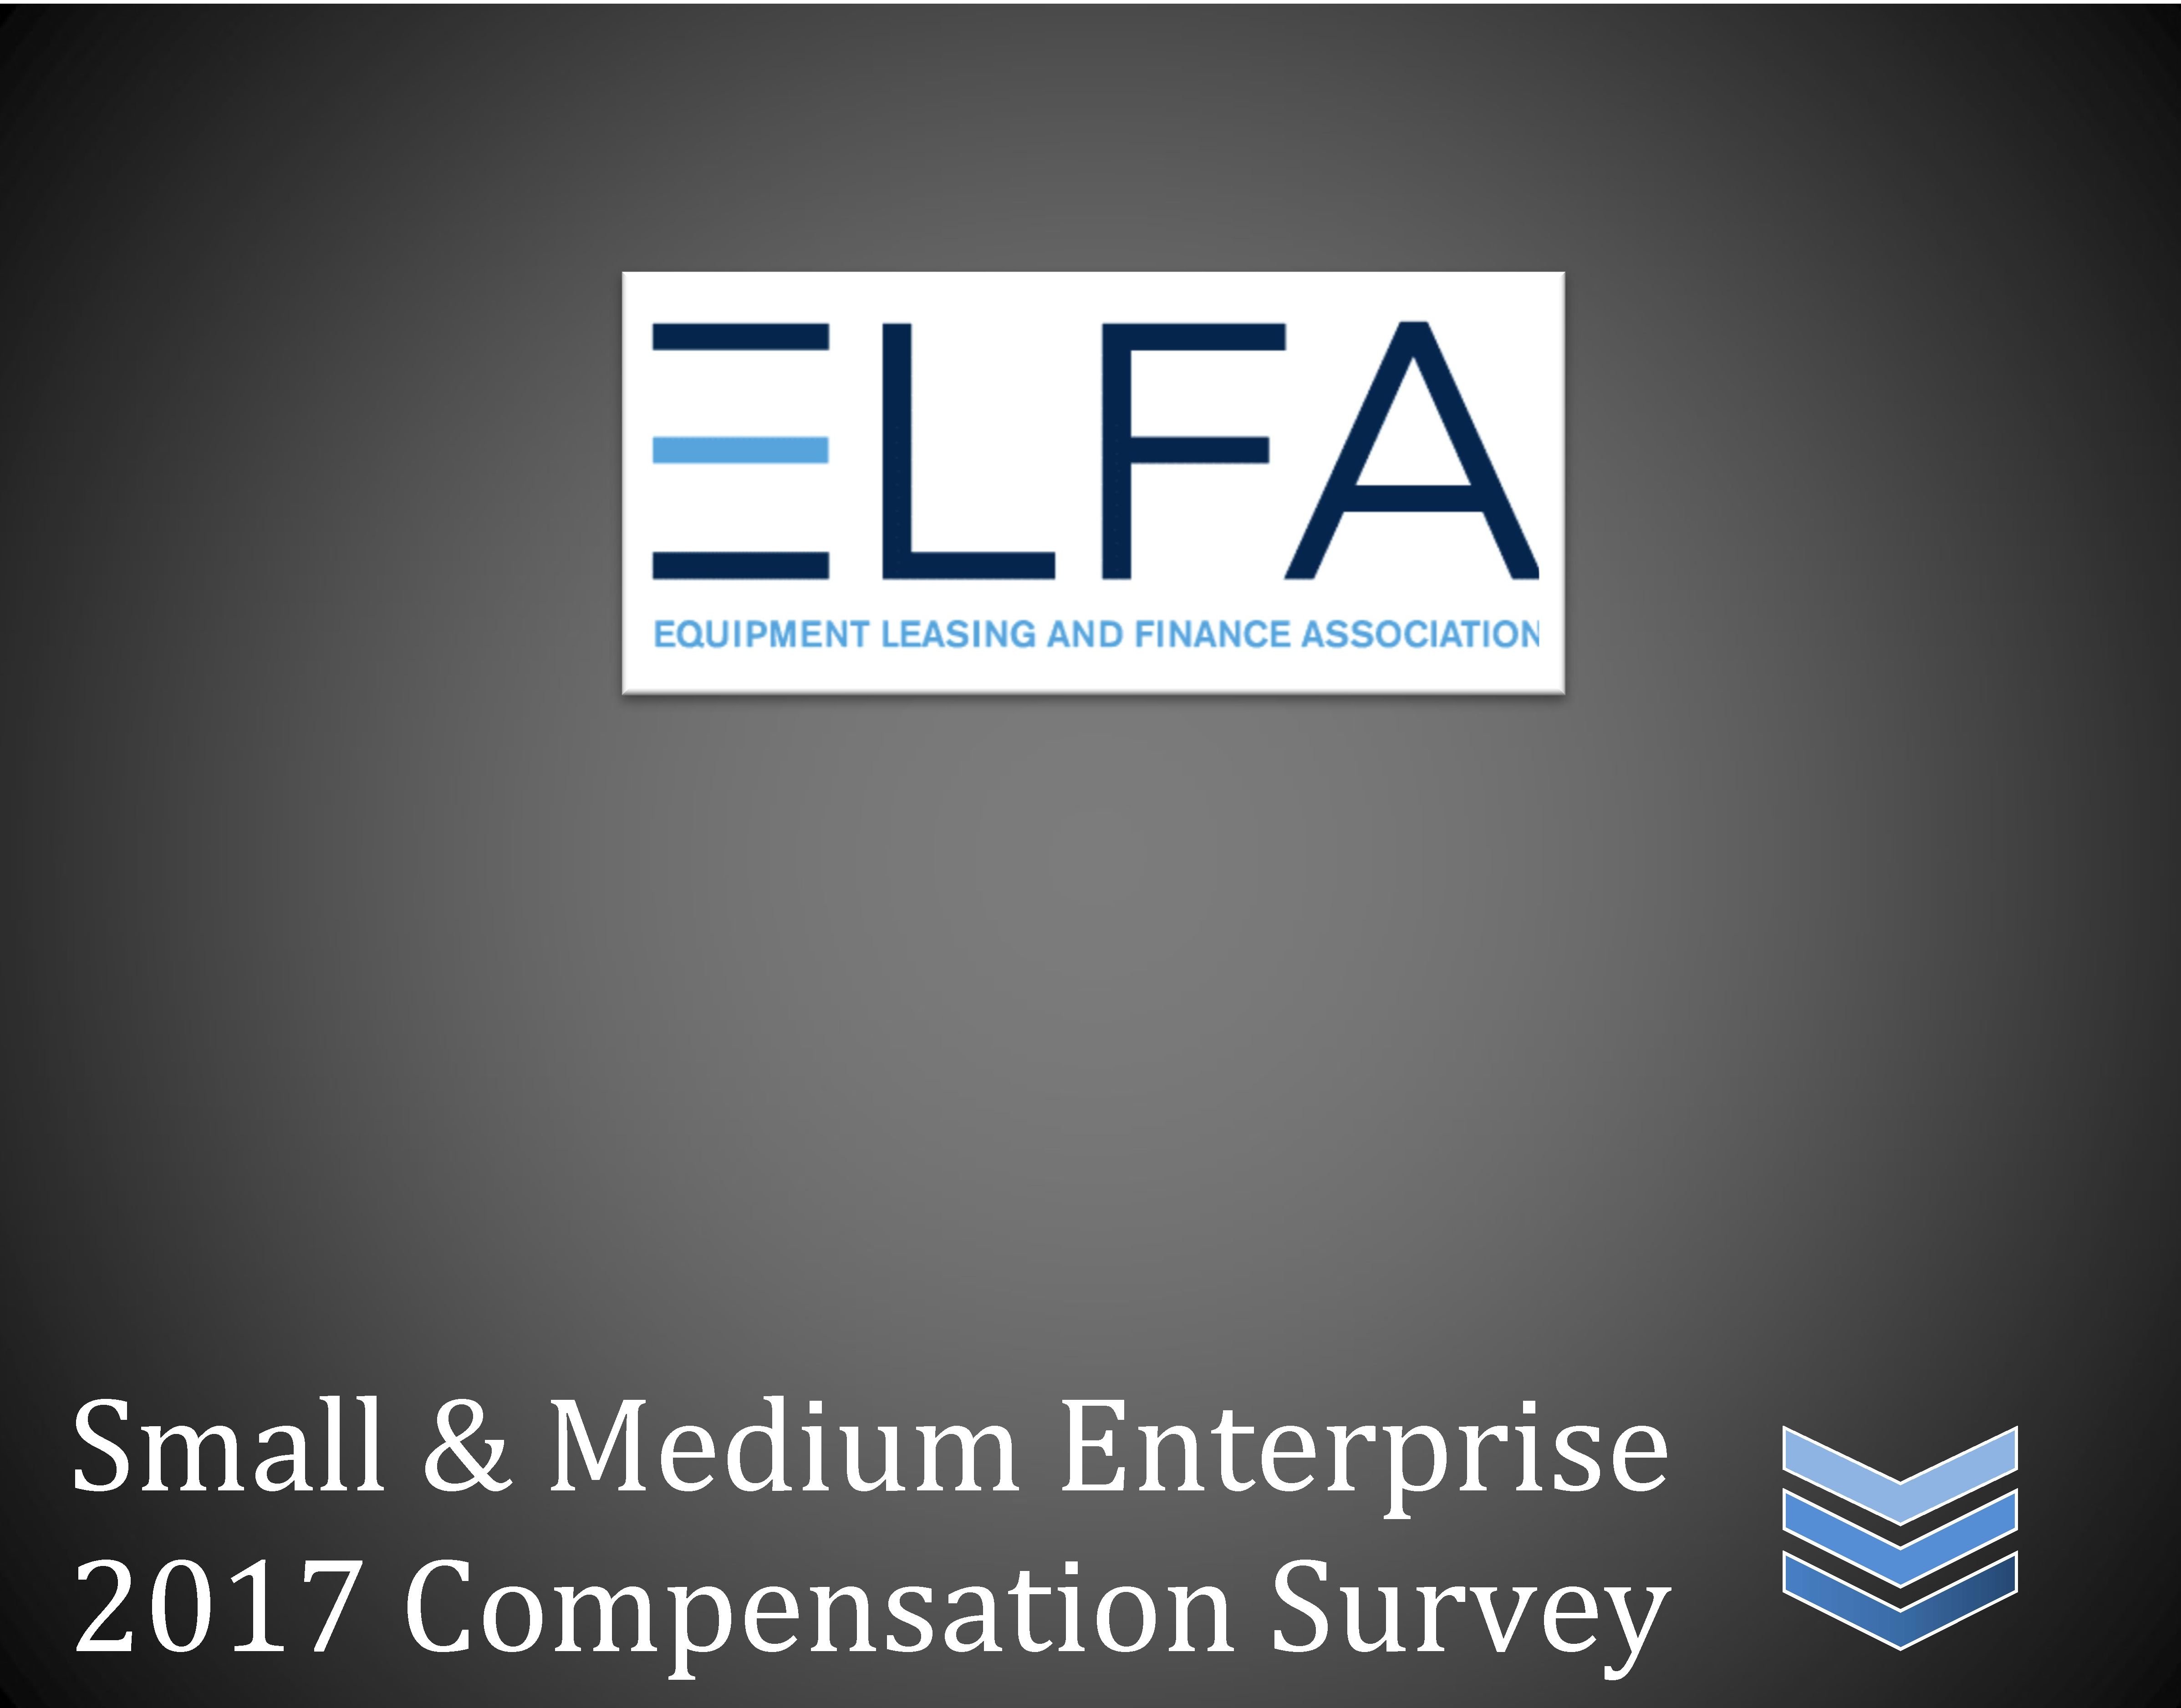 SME Compensation Survey Report